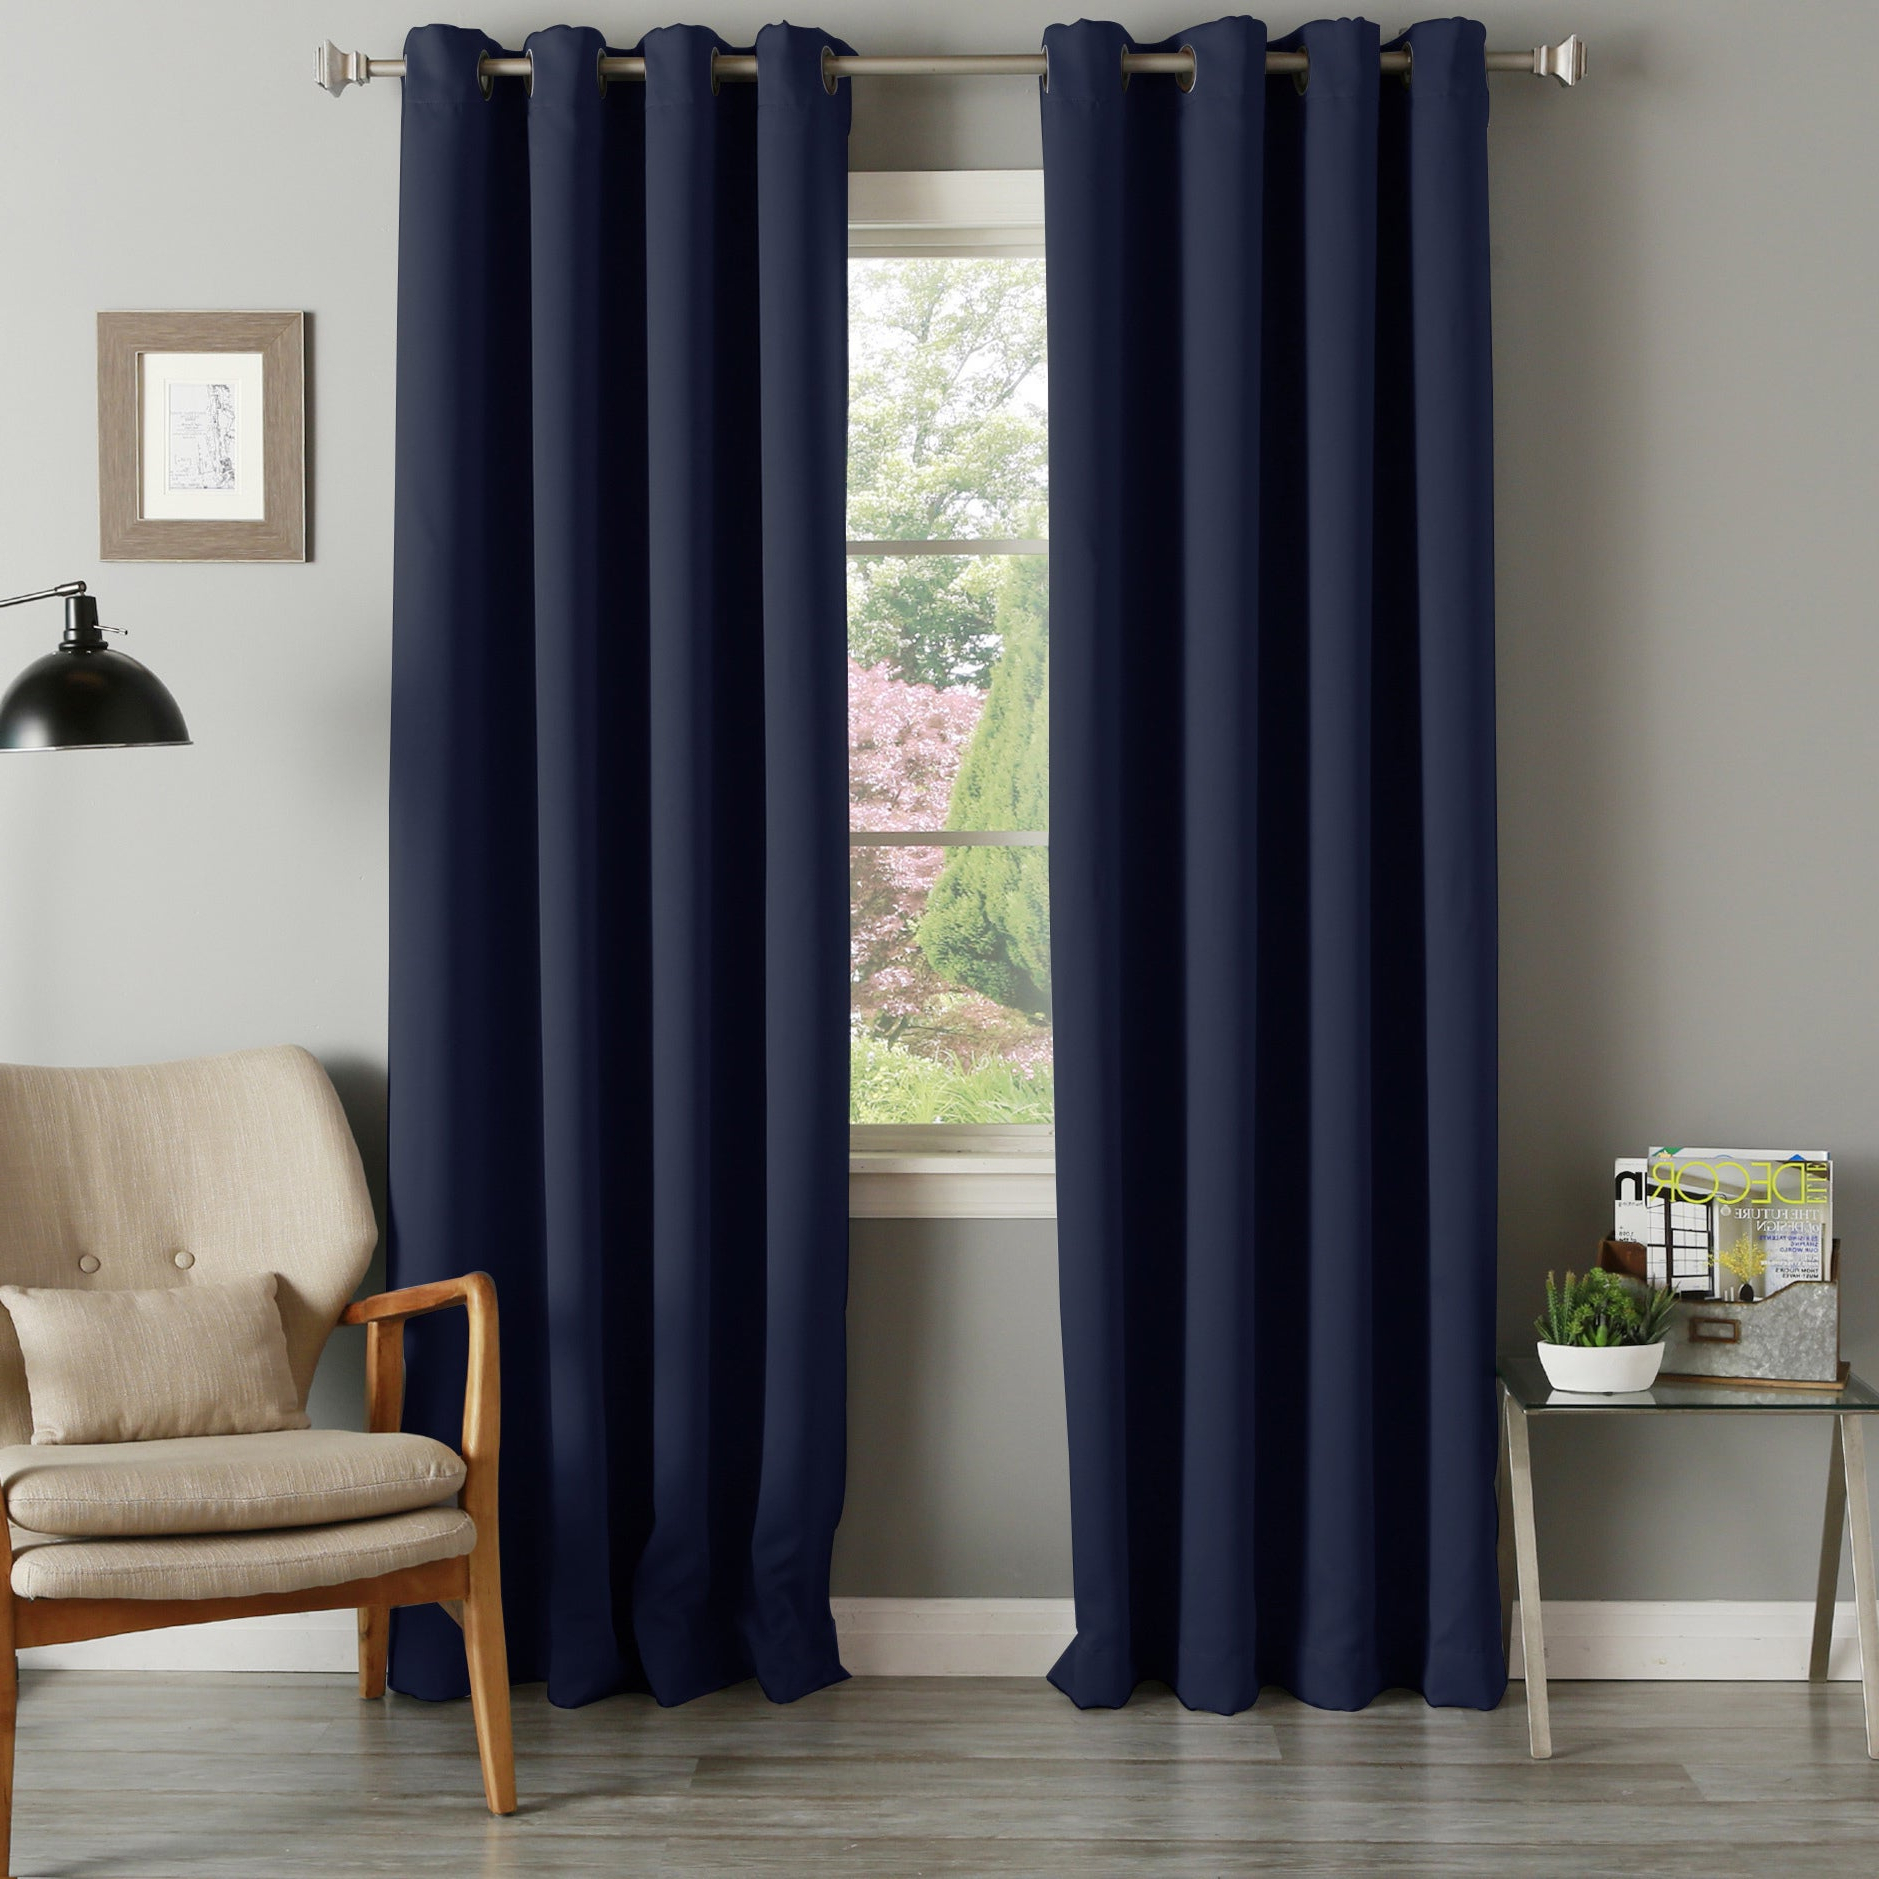 Aurora Home Grommet Top Thermal Insulated 96 Inch Blackout Curtain Panel Pair – 52 X 96 For Most Popular Grommet Top Thermal Insulated Blackout Curtain Panel Pairs (View 7 of 20)